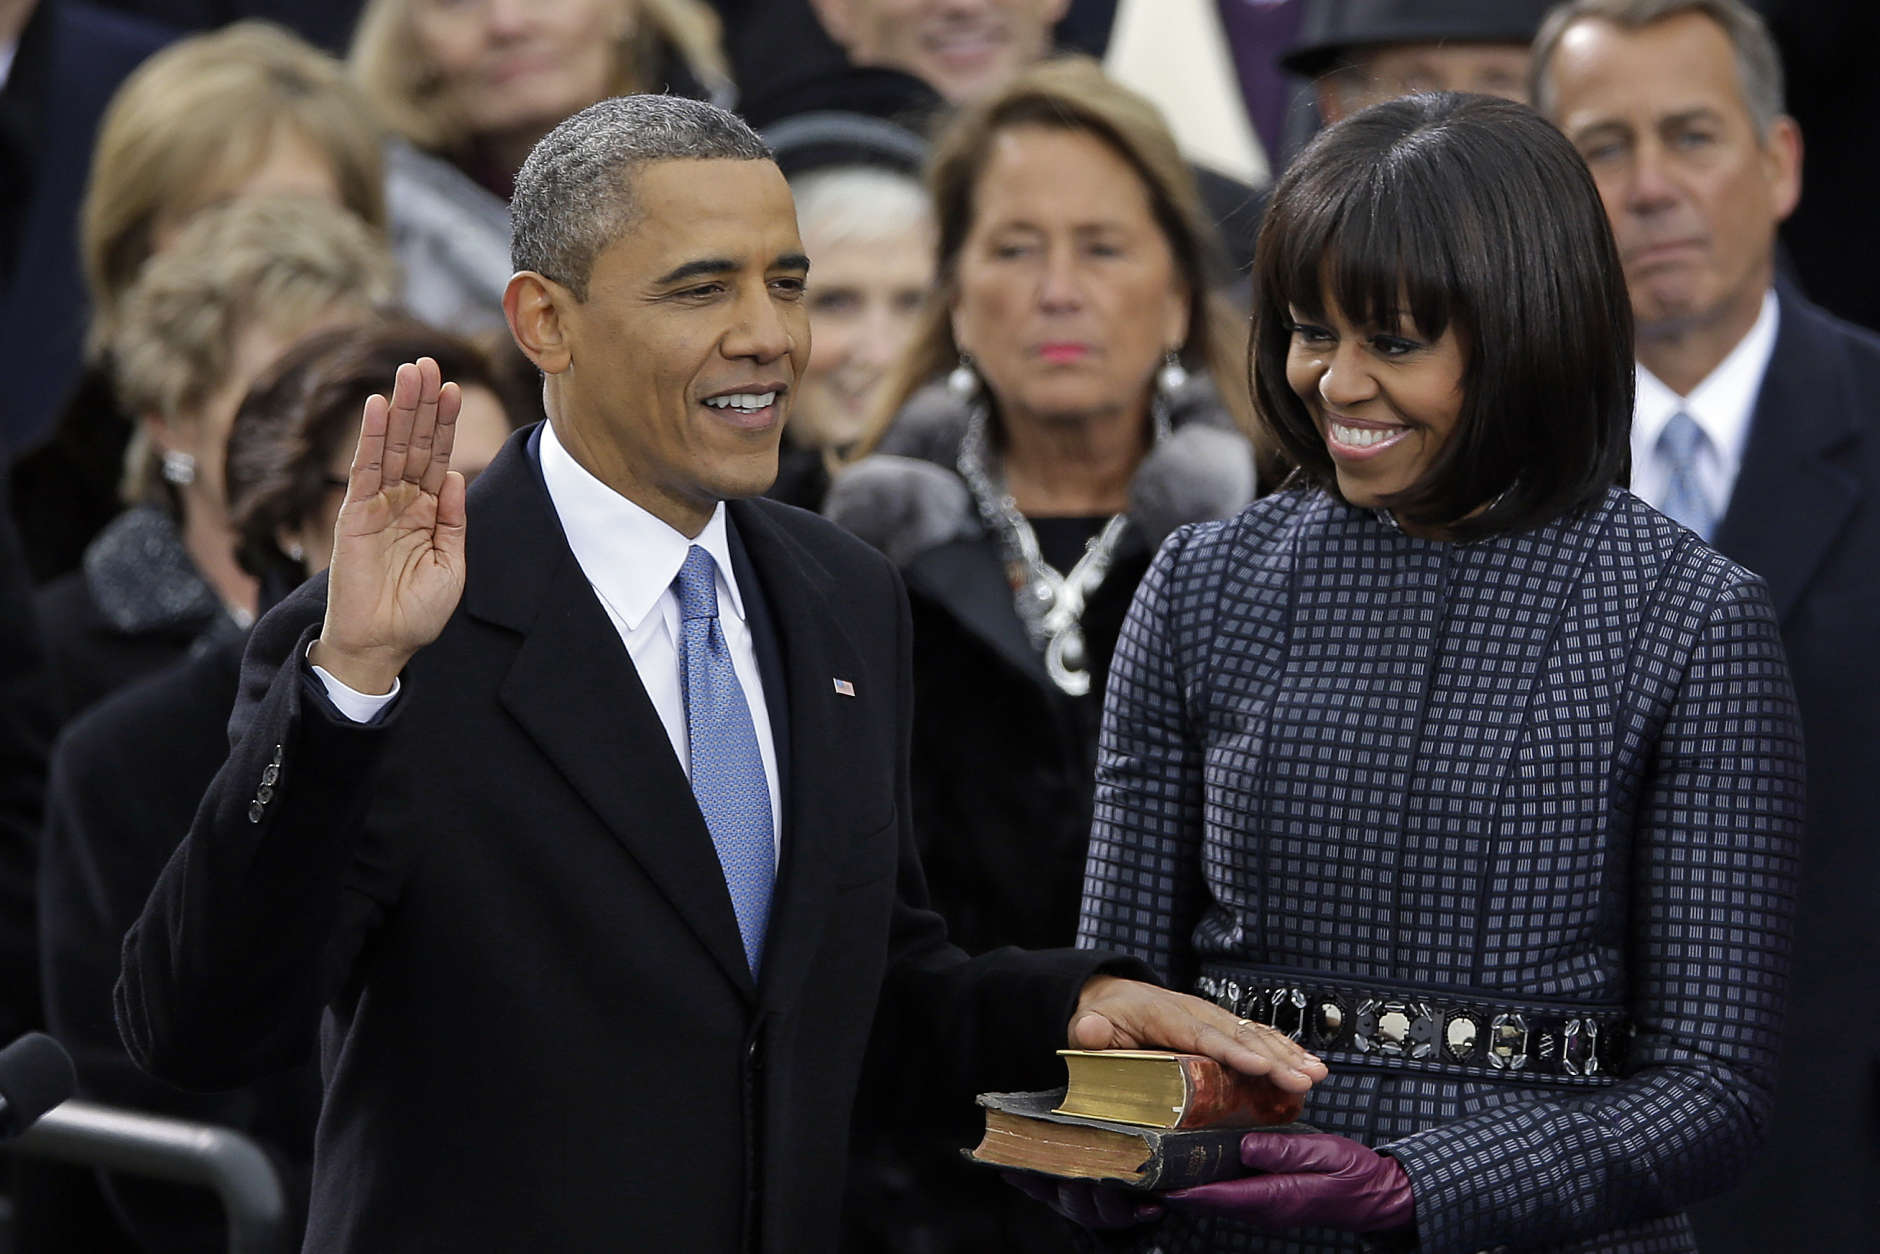 RETRANSMITTED TO REMOVE REFERENCE TO DAUGHTERS, WHO ARE NOT PICTURED- President Barack Obama receives the oath of office from Chief Justice John Roberts as first lady Michelle Obama watches during the ceremonial swearing-in at the U.S. Capitol during the 57th Presidential Inauguration in Washington, Monday, Jan. 21, 2013. (AP Photo/Carolyn Kaster)